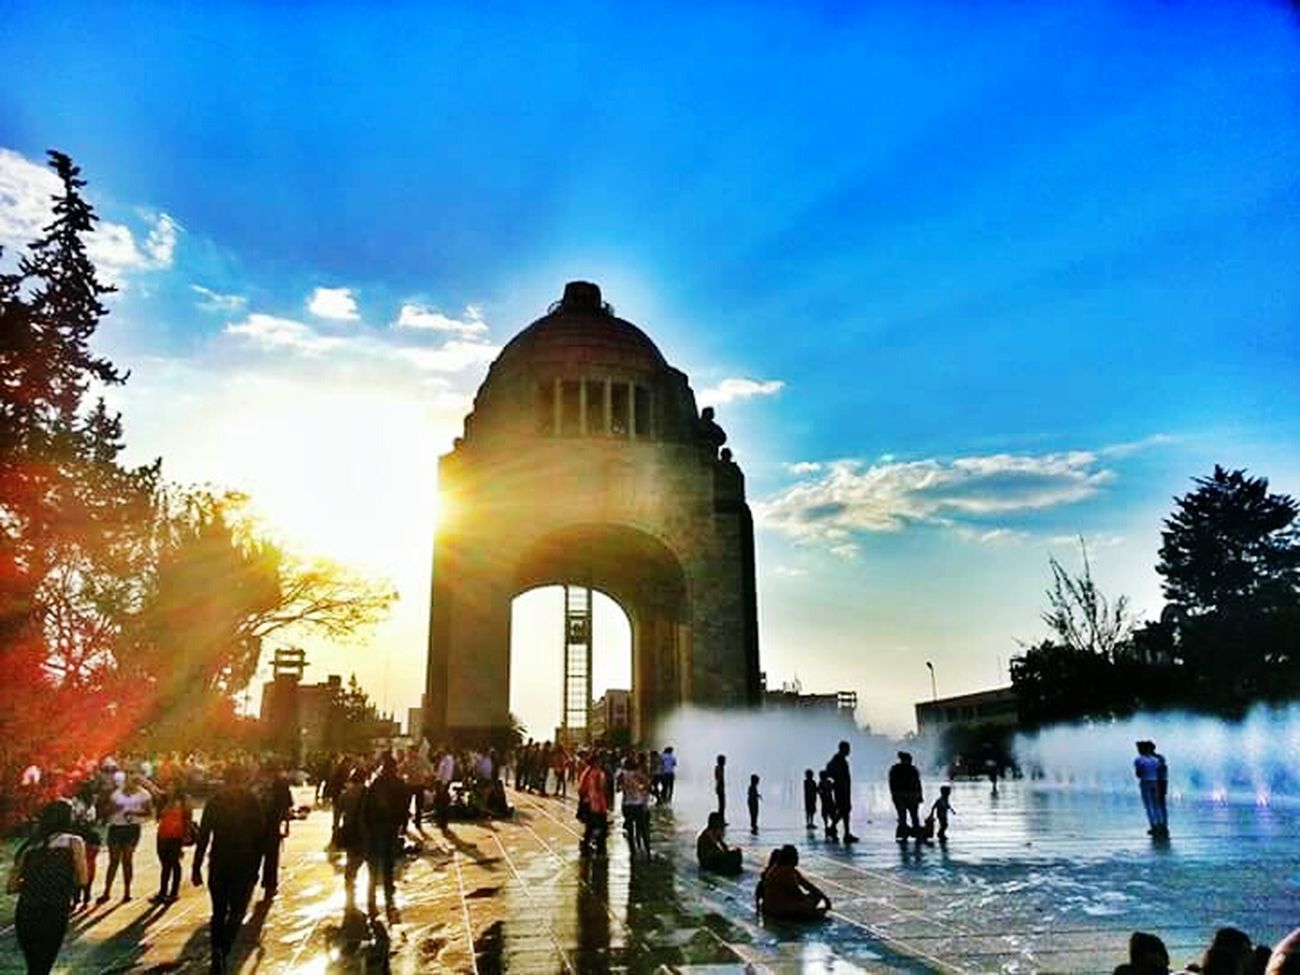 Atardeciendo en el monumento a la Revolución... Urban Lifestyle Cityscapes EyeEm Best Shots The Traveler - 2015 EyeEm Awards